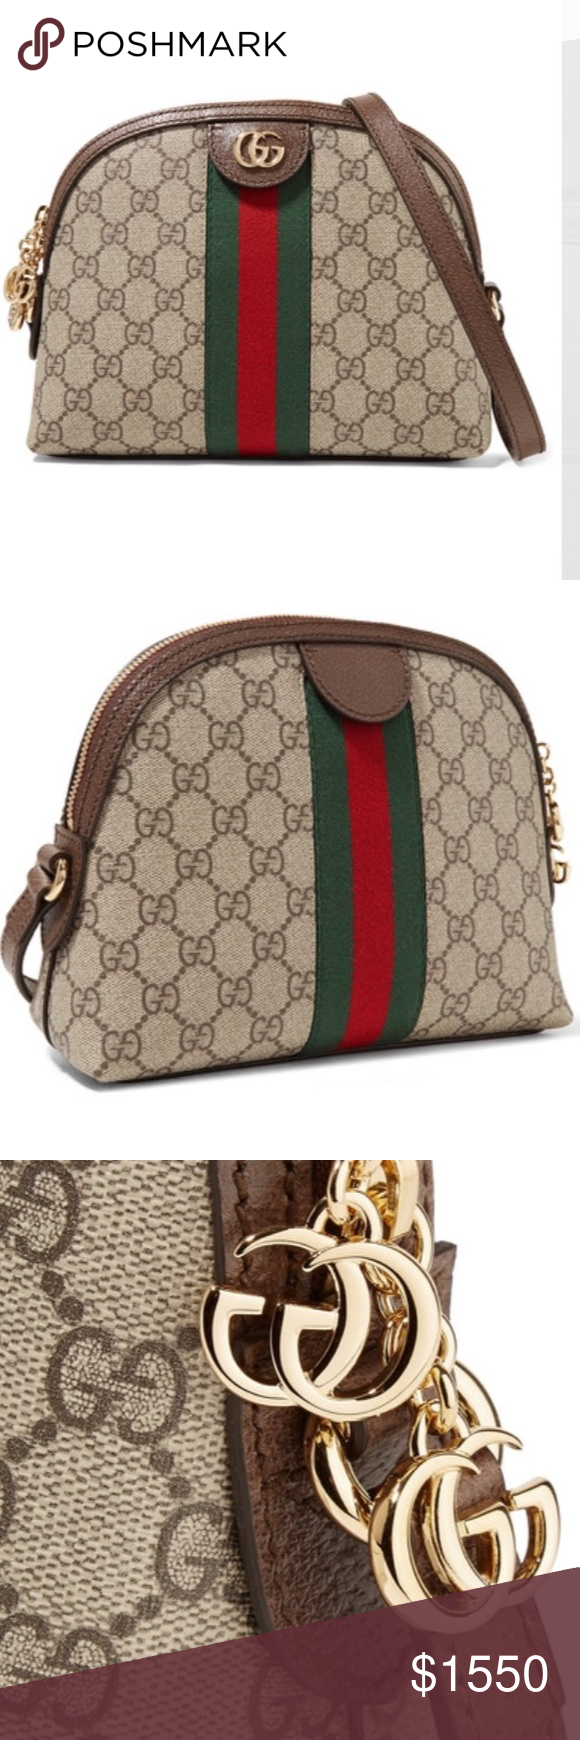 eec074d3edc5 Gucci Ophidia leather-canvas shoulder bag Brand New with tags and dust bag  No box. There are a handful of signatures that make a piece distinctly Gucci